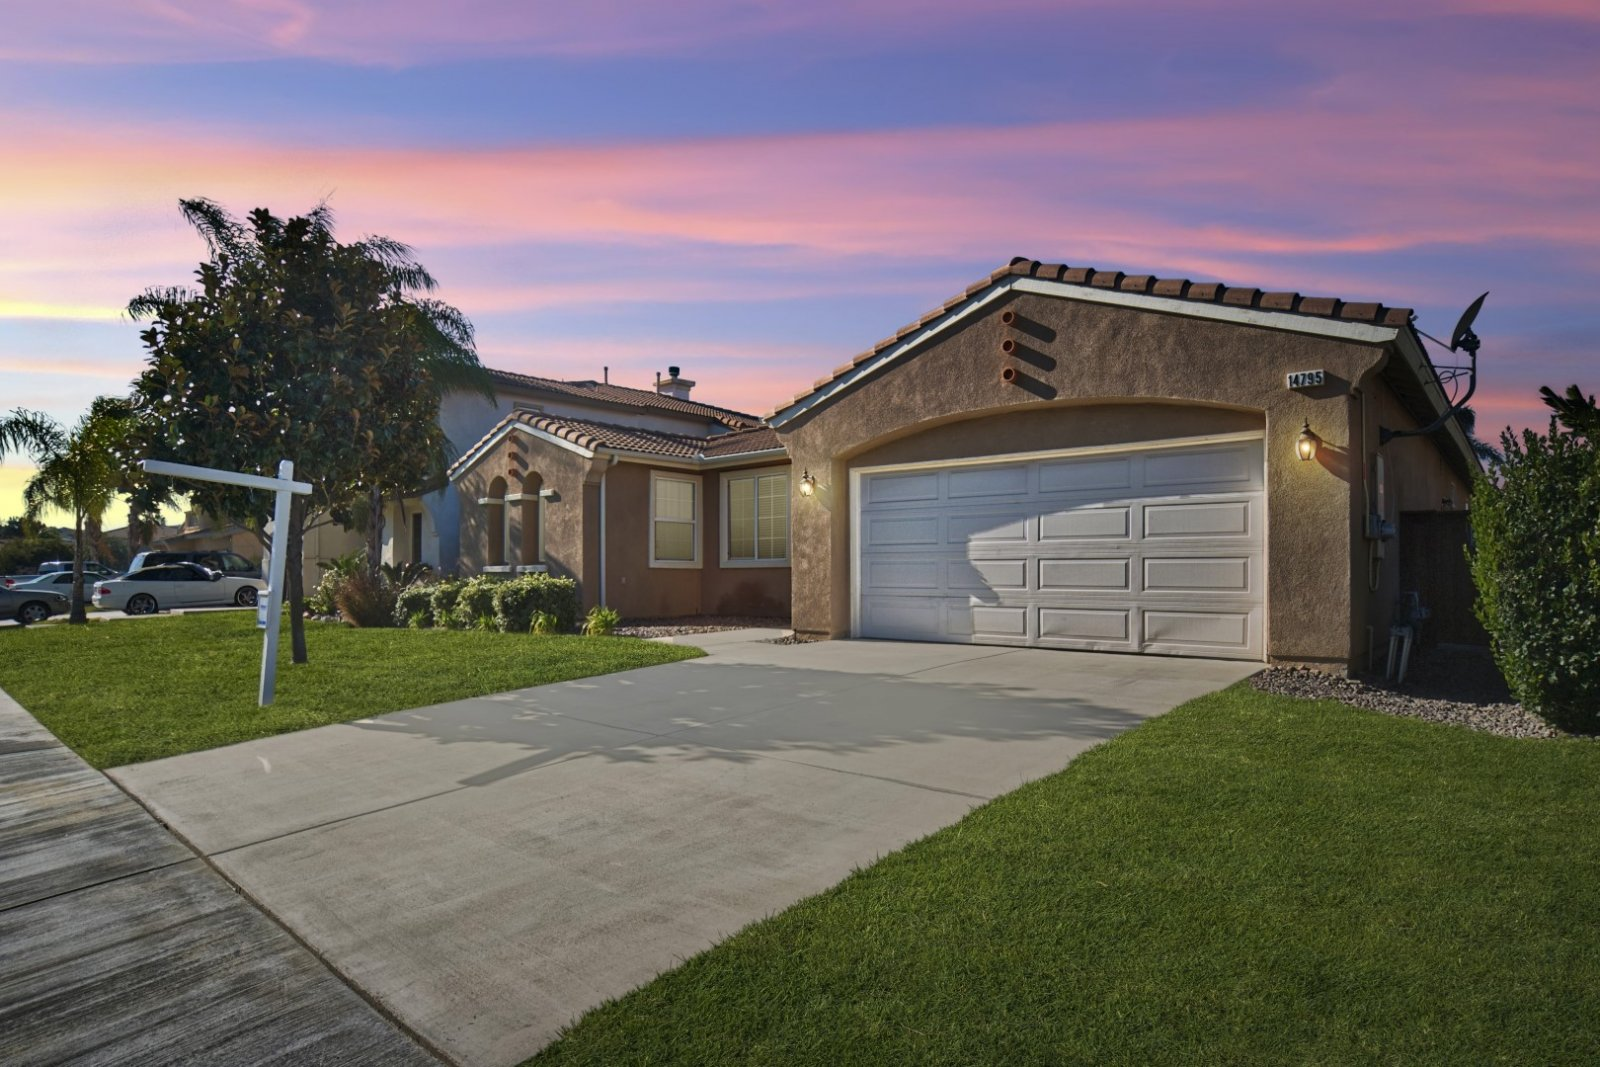 Spacious 1-Story Home with Potential 4th Bedroom - Just Sold - 14795 Green Lawn, Moreno Valley, 92555